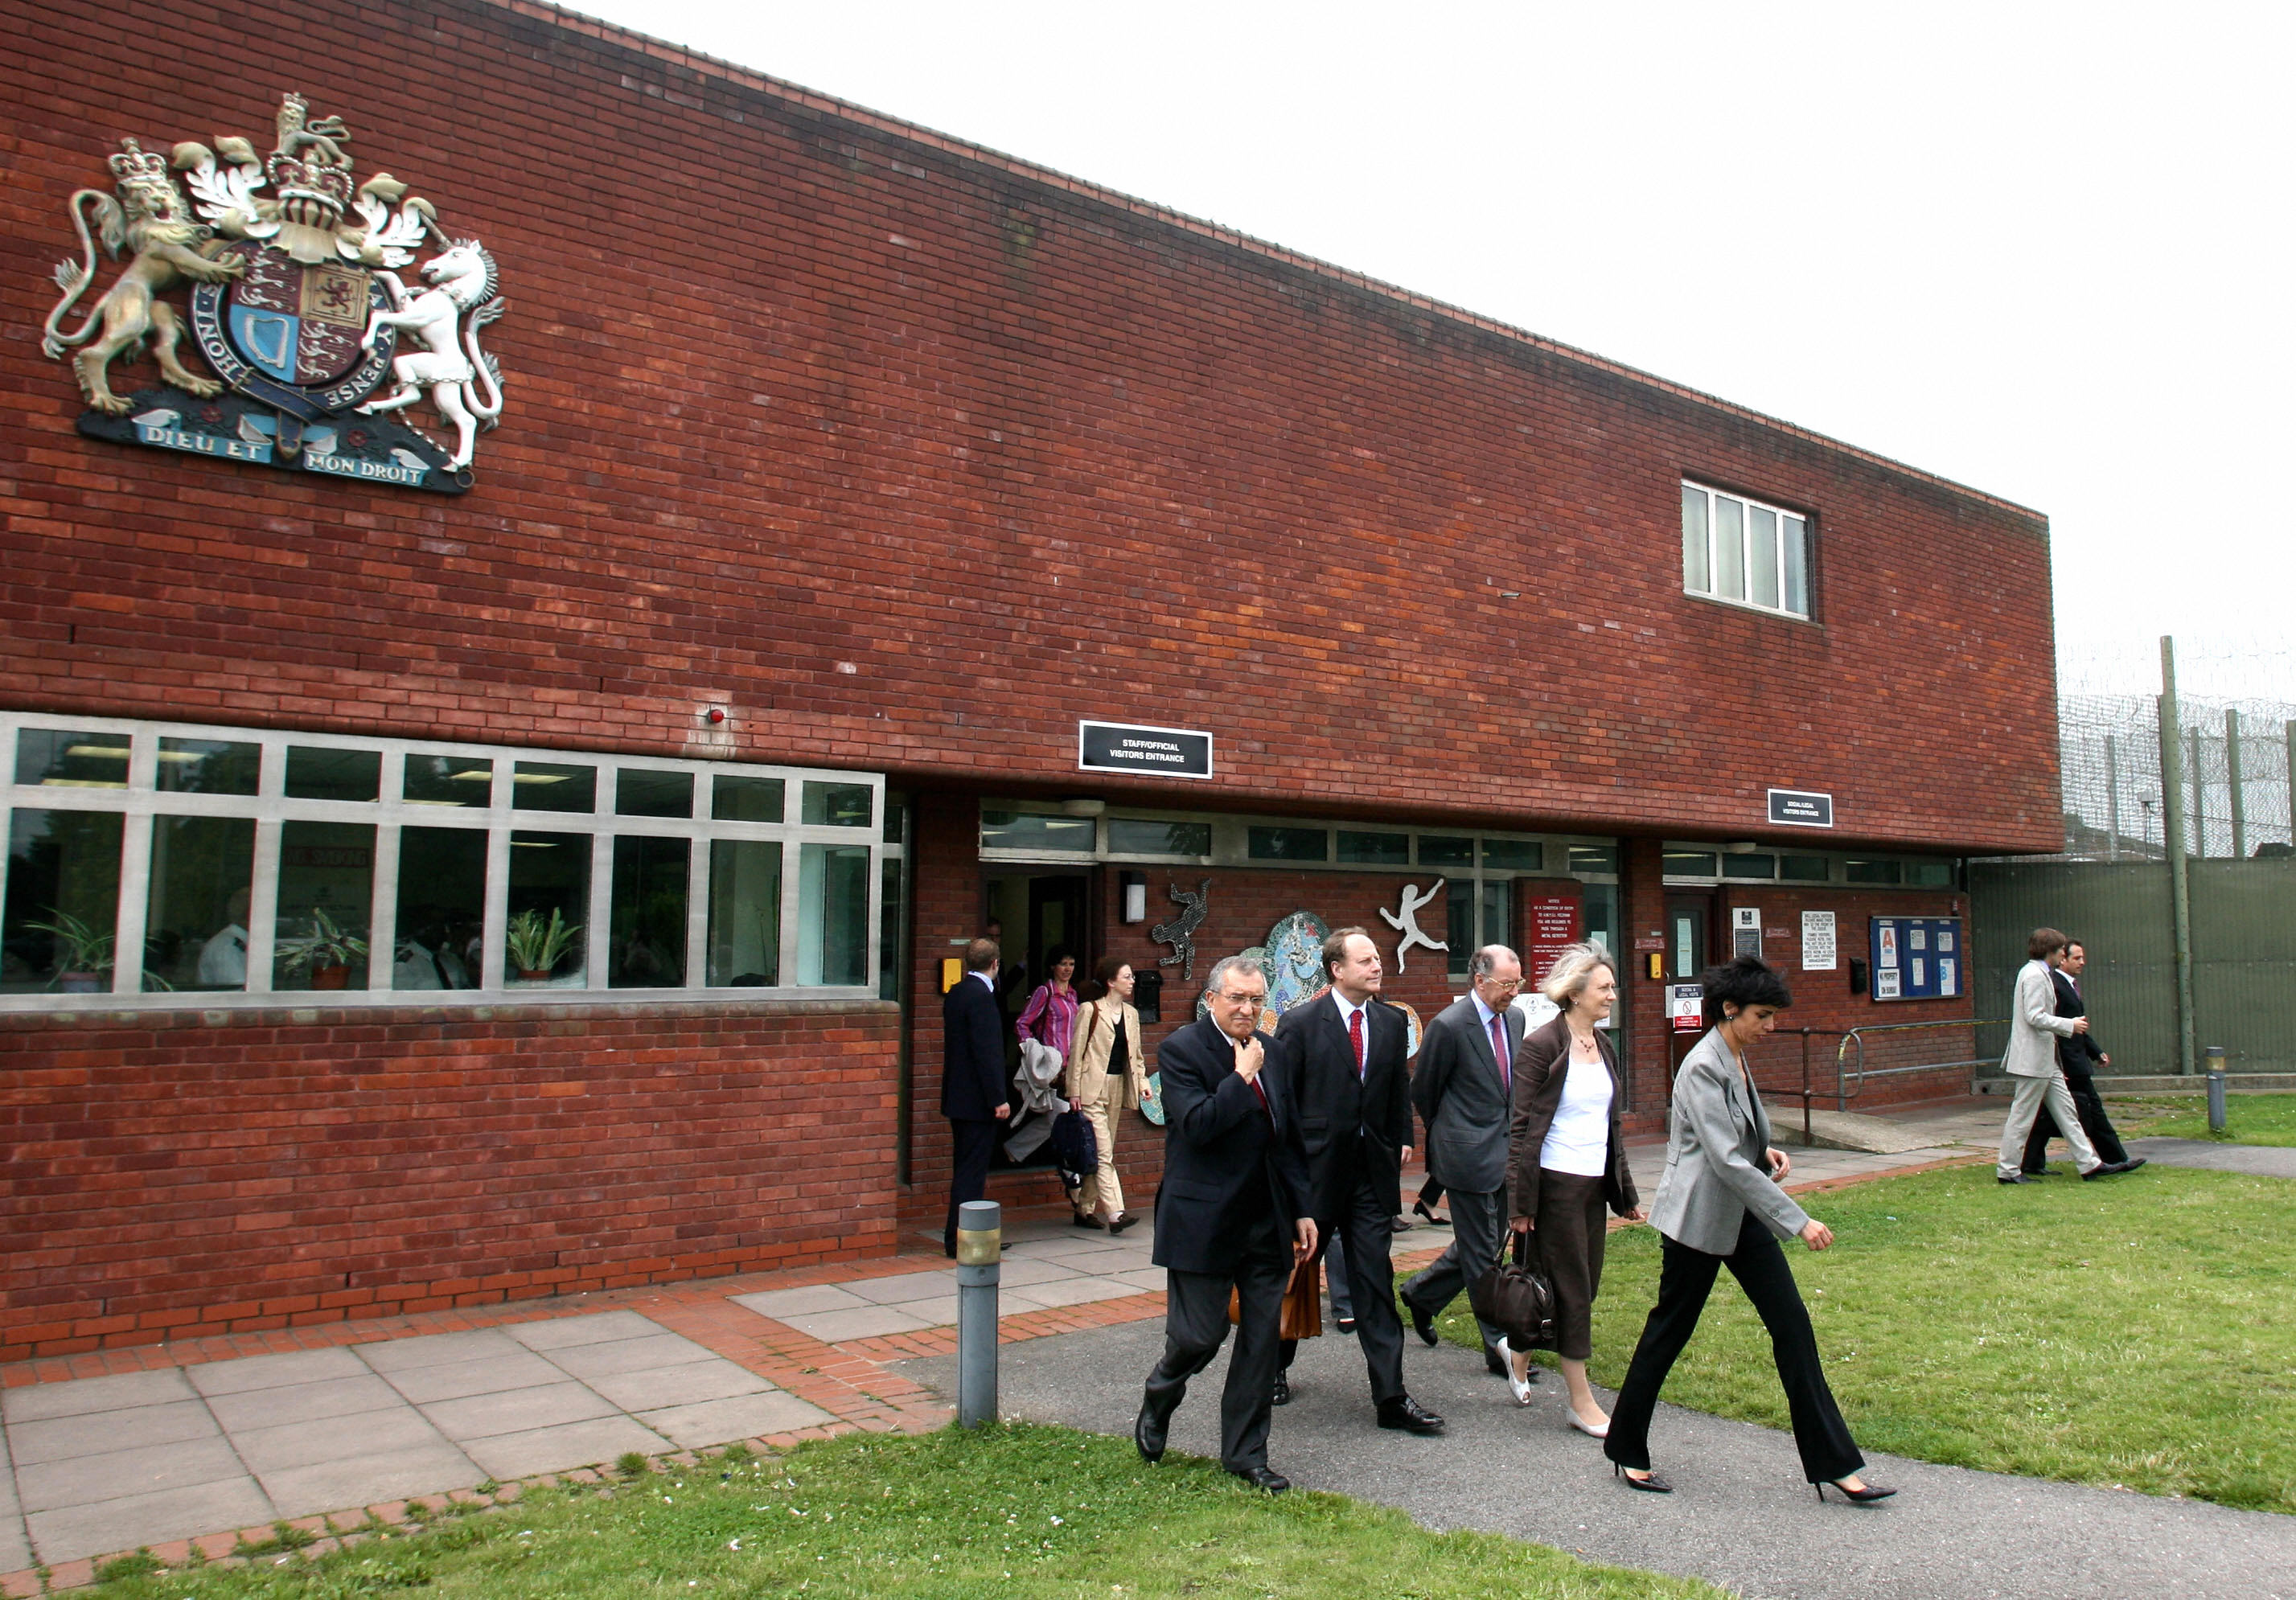 French Justice Minister Rachida Dati (R) leaves the Feltham Young Offenders Institute in south west London, 27 July 2007, following a visit to the youth prison with the British Chief Inspector of Prisons Anne Owers (2R). (Photo: Chris Young/AFP/Getty Images)